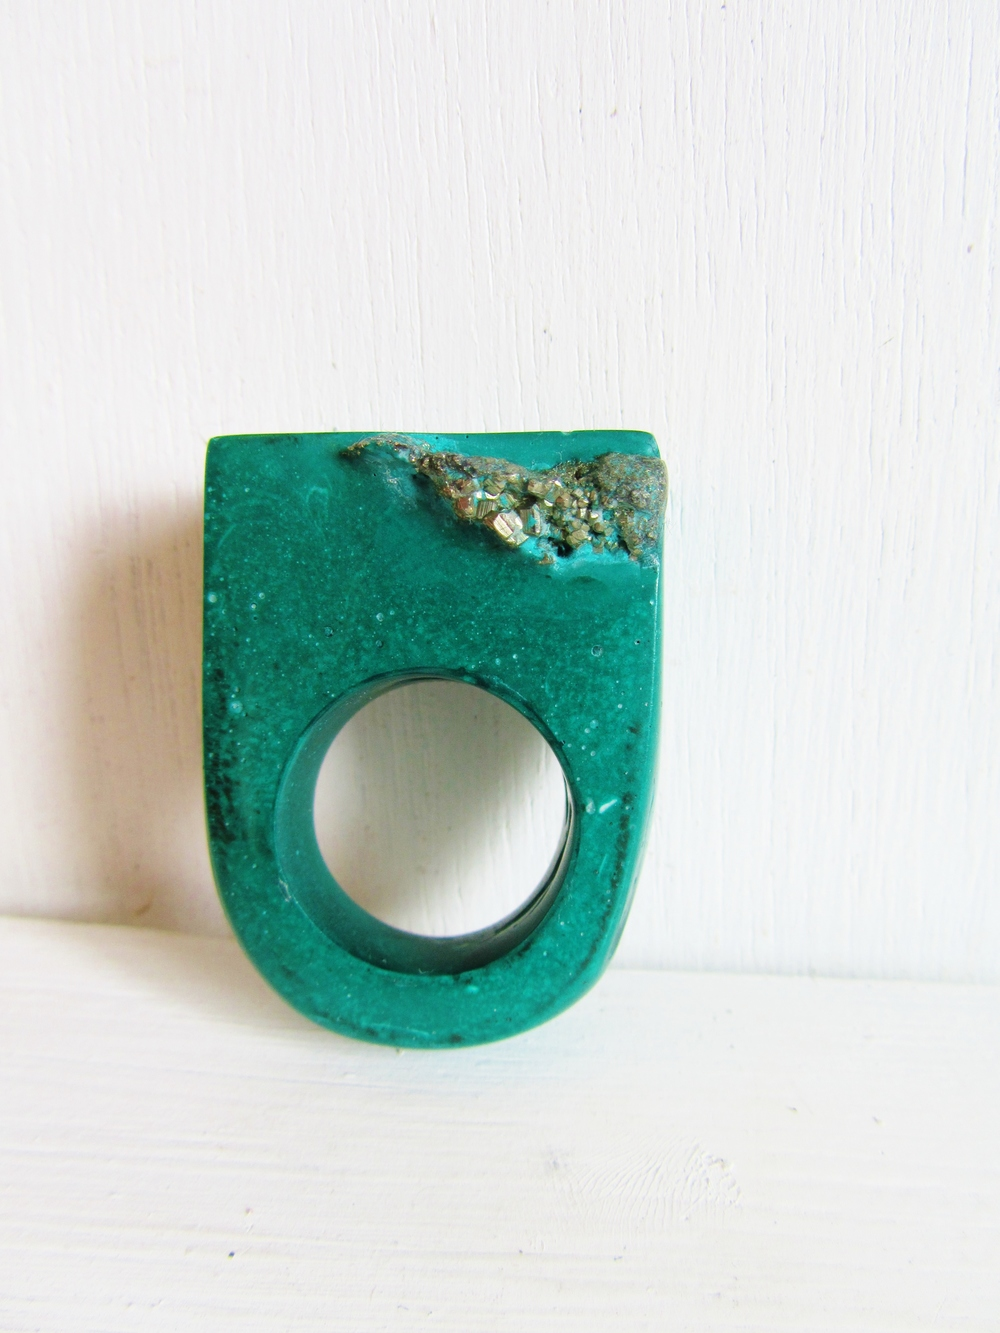 New green Hewn ring with pyrite nugget available to purchase in the exhibition.